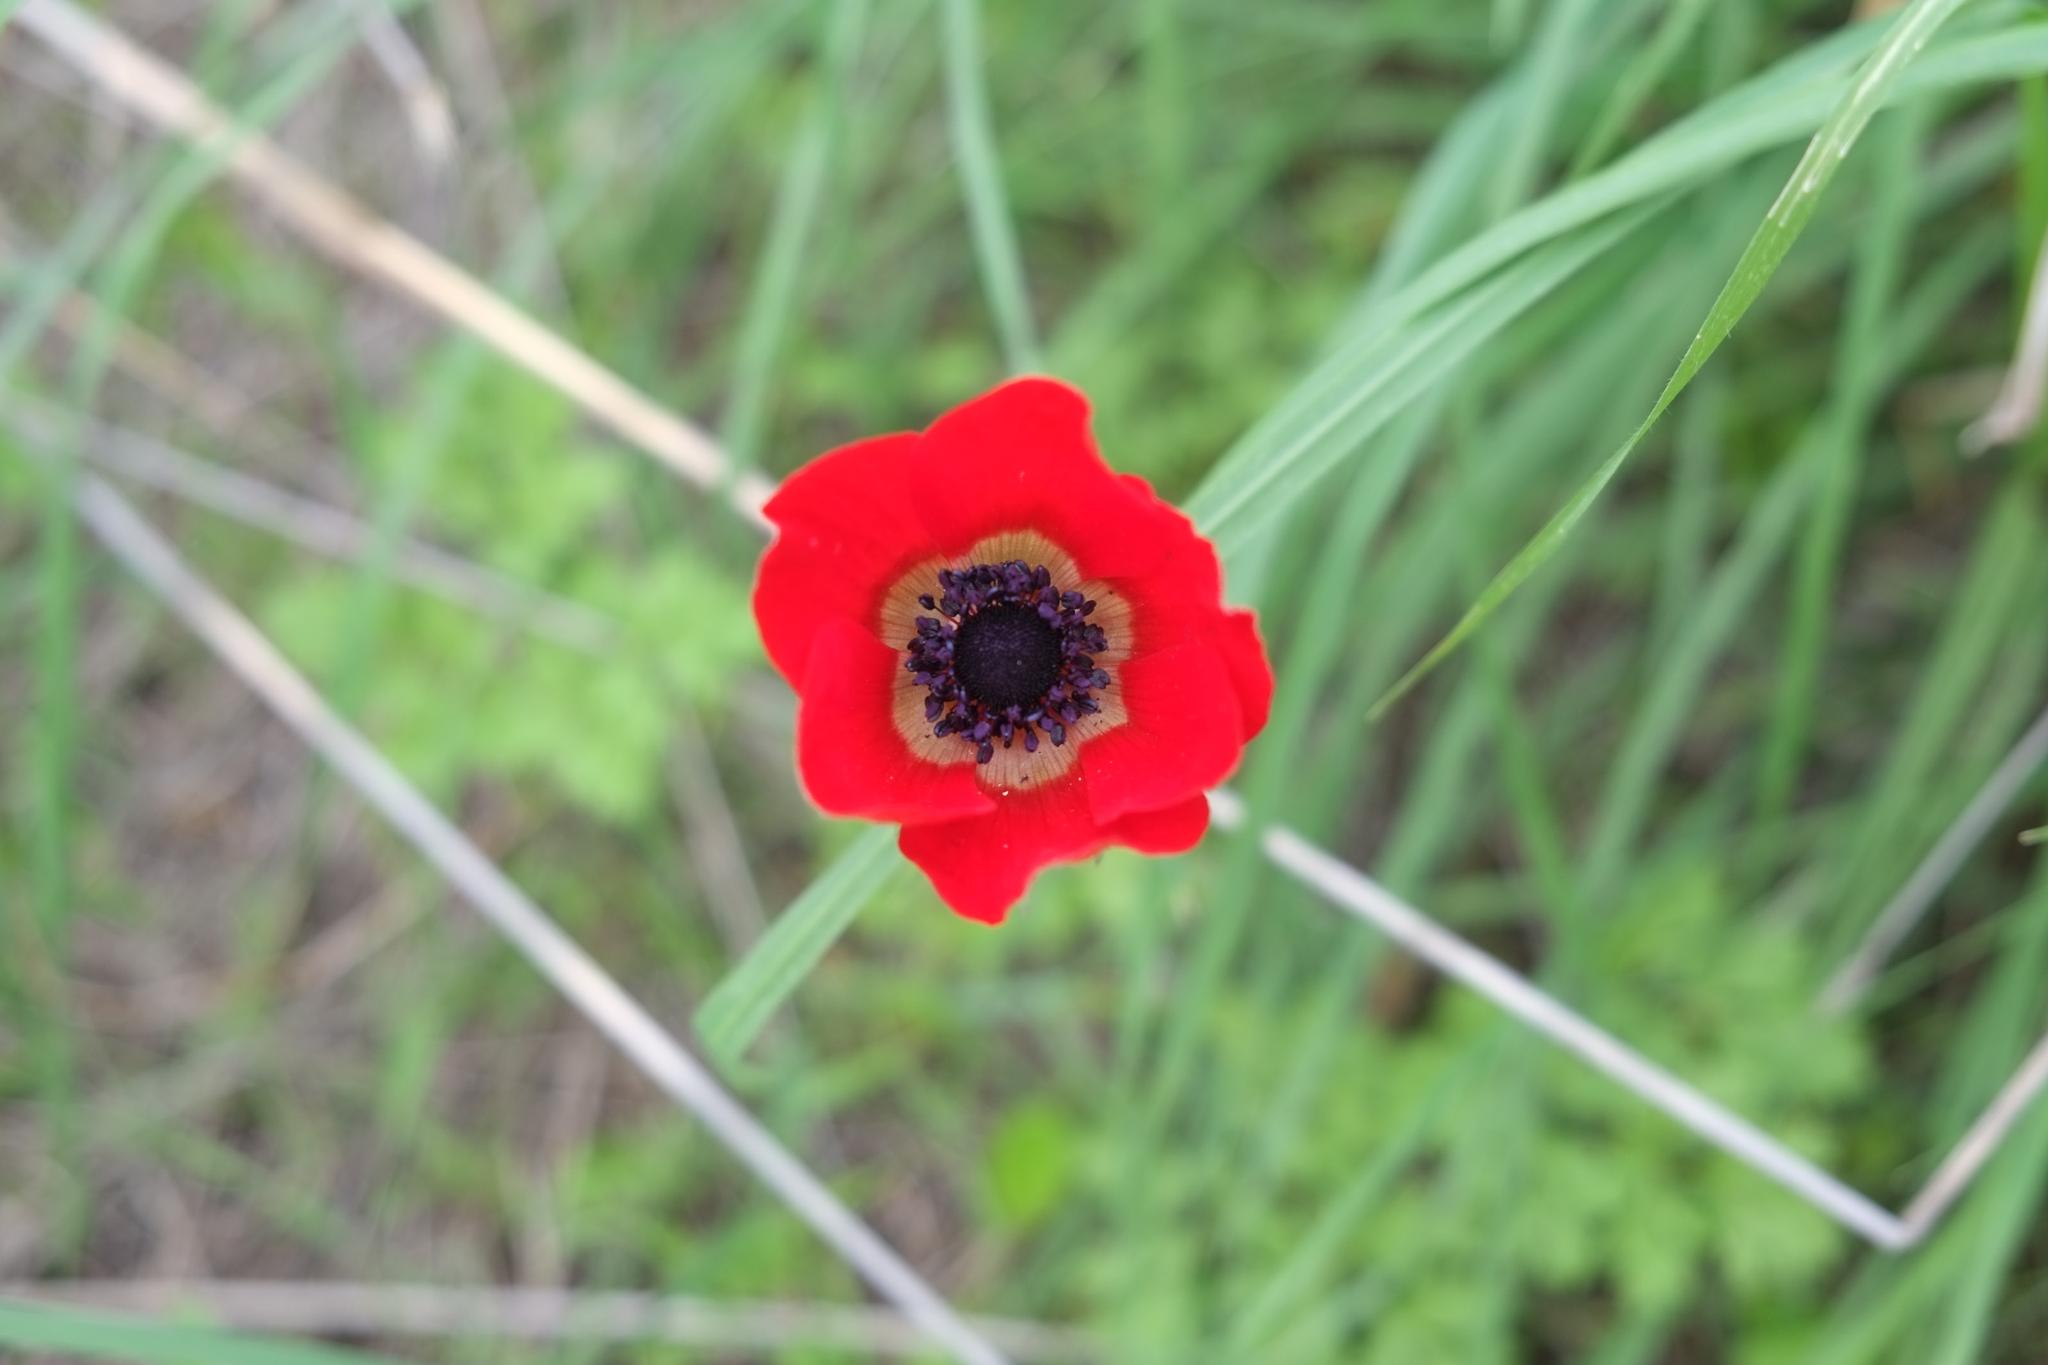 Anemone by doron